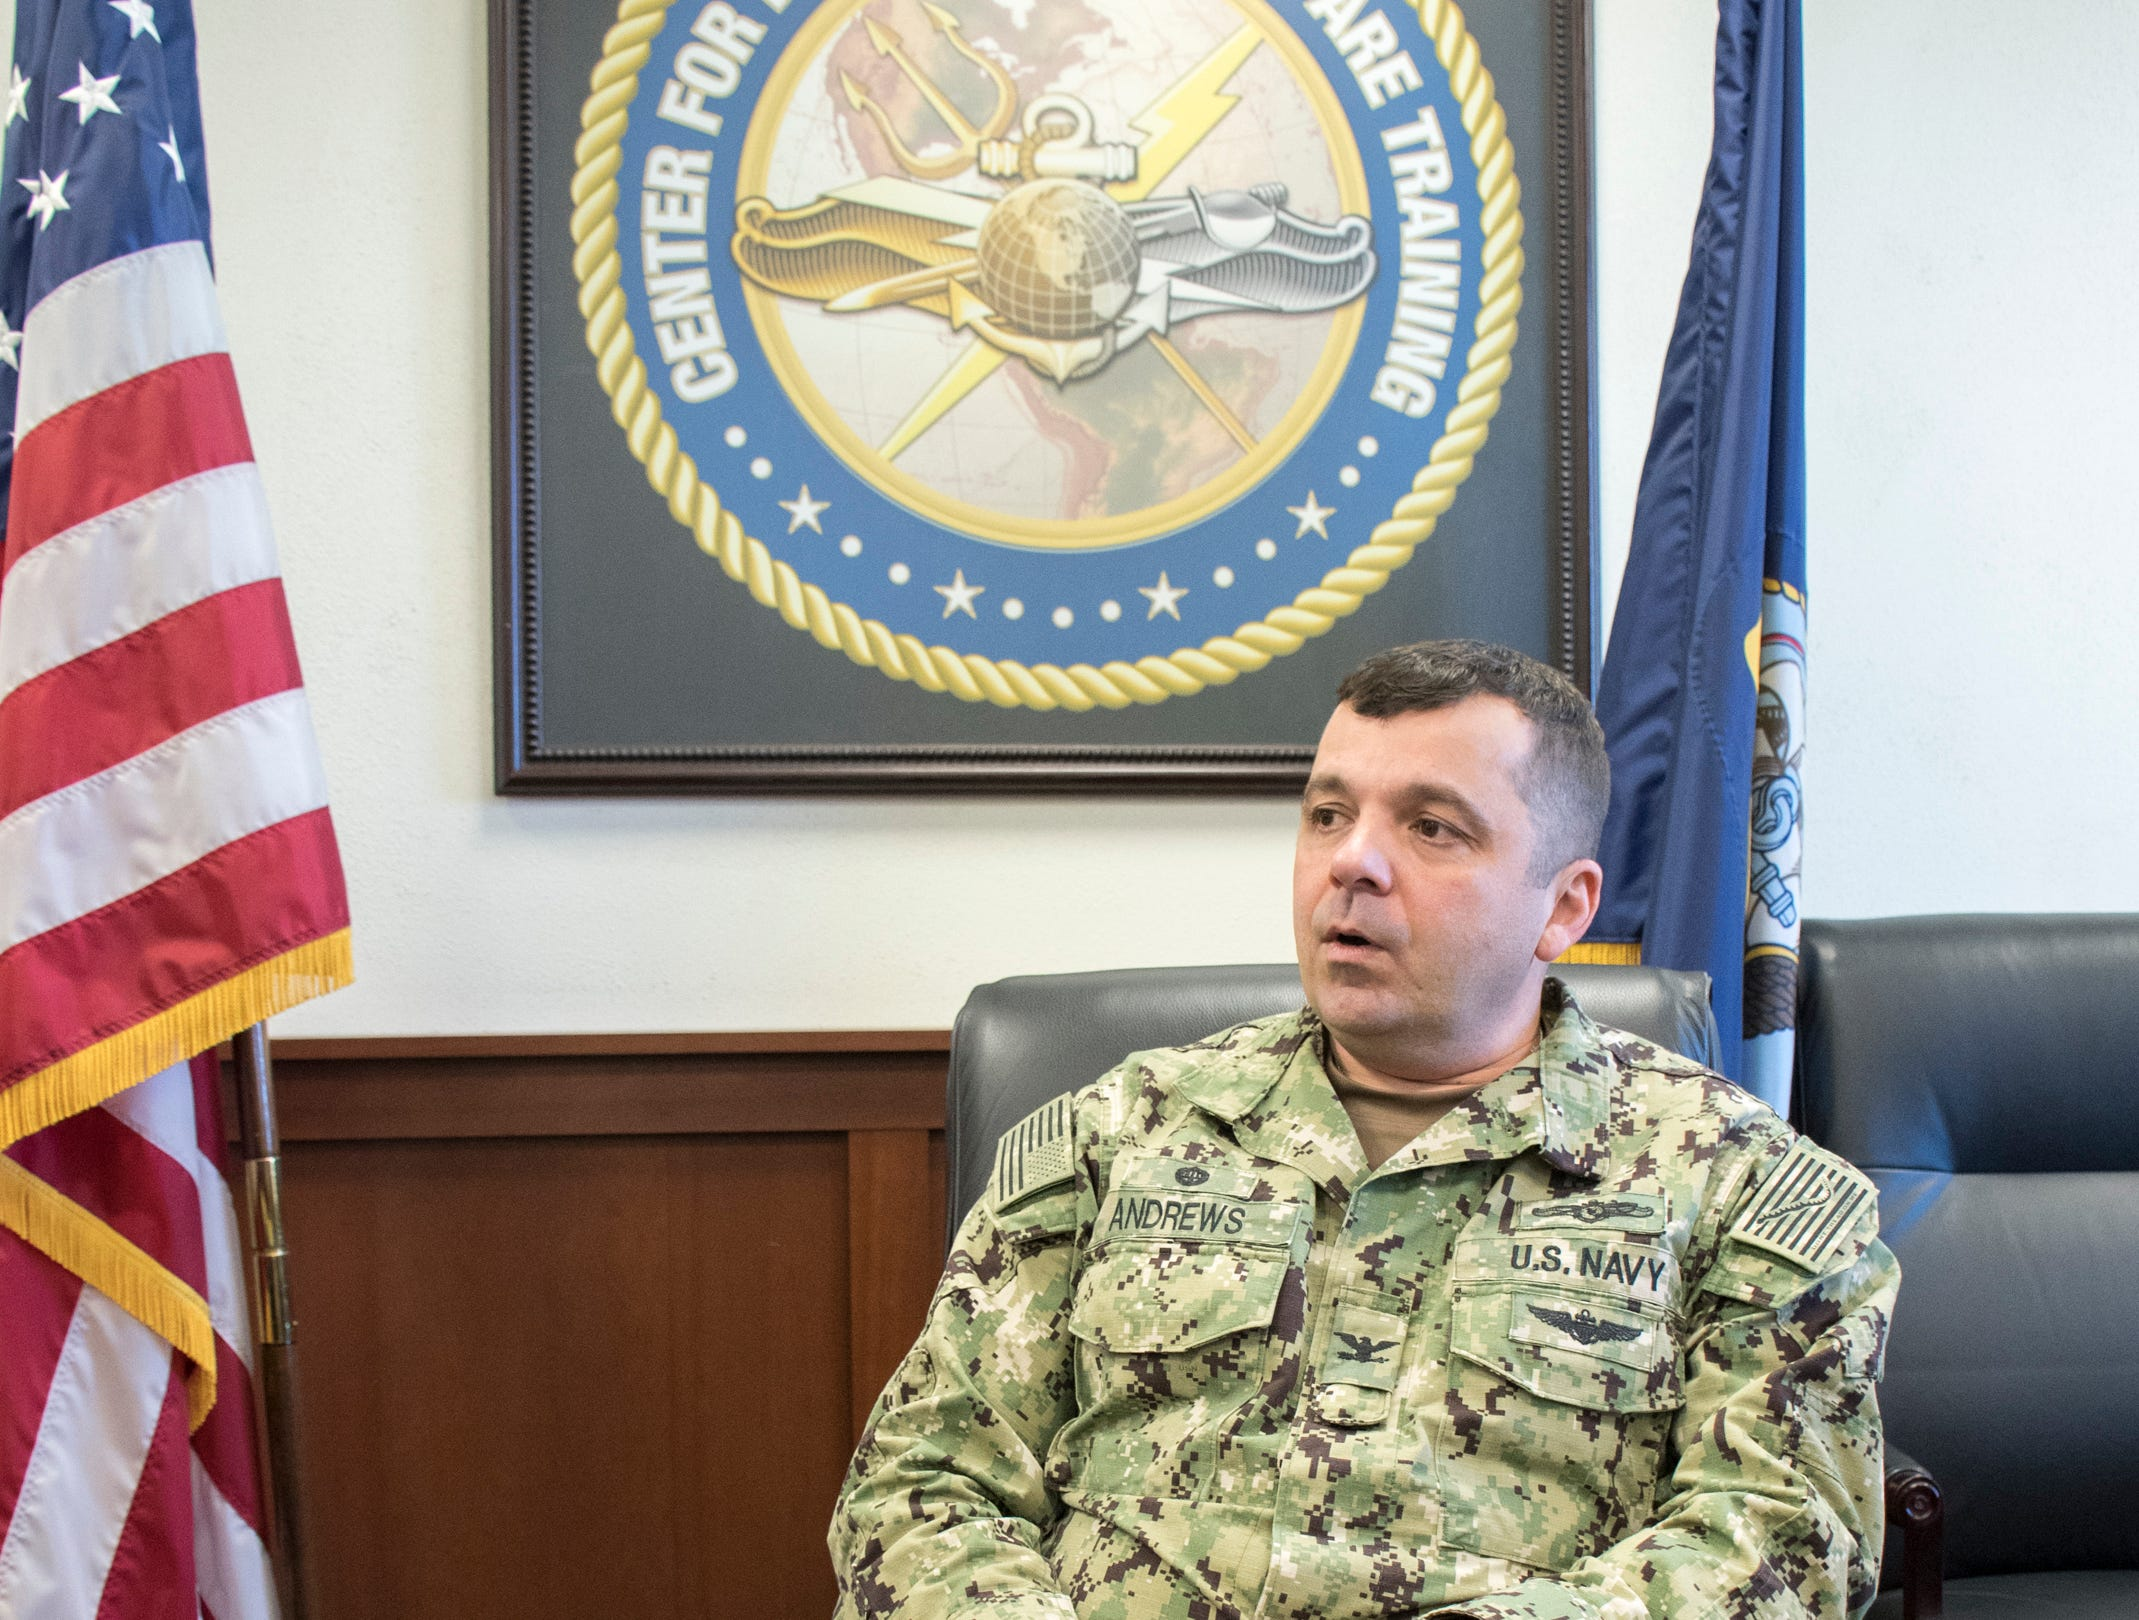 Capt. Nicholas Andrews, Center for Information Warfare Training commanding officer, talks about the building projects and expansion underway at NAS Pensacola Corry Station in Pensacola on Thursday, January 10, 2019.